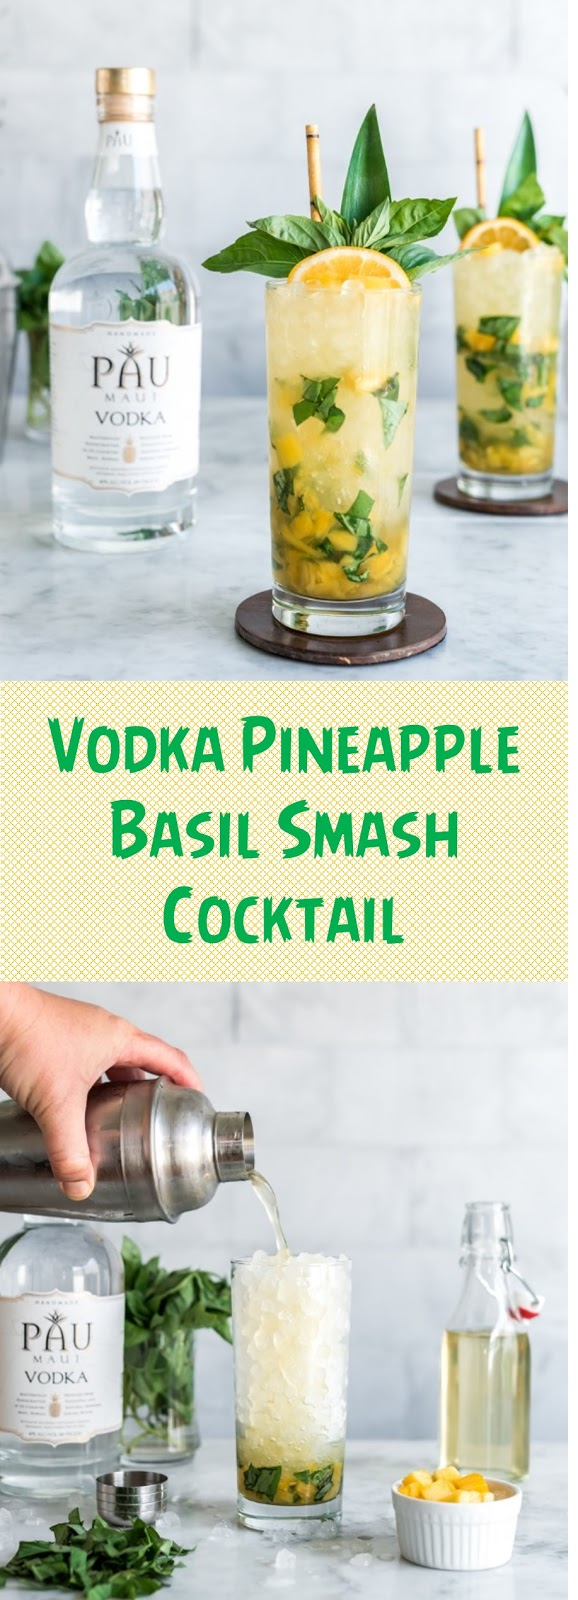 Vodka Pineapple Basil Smash Cocktail